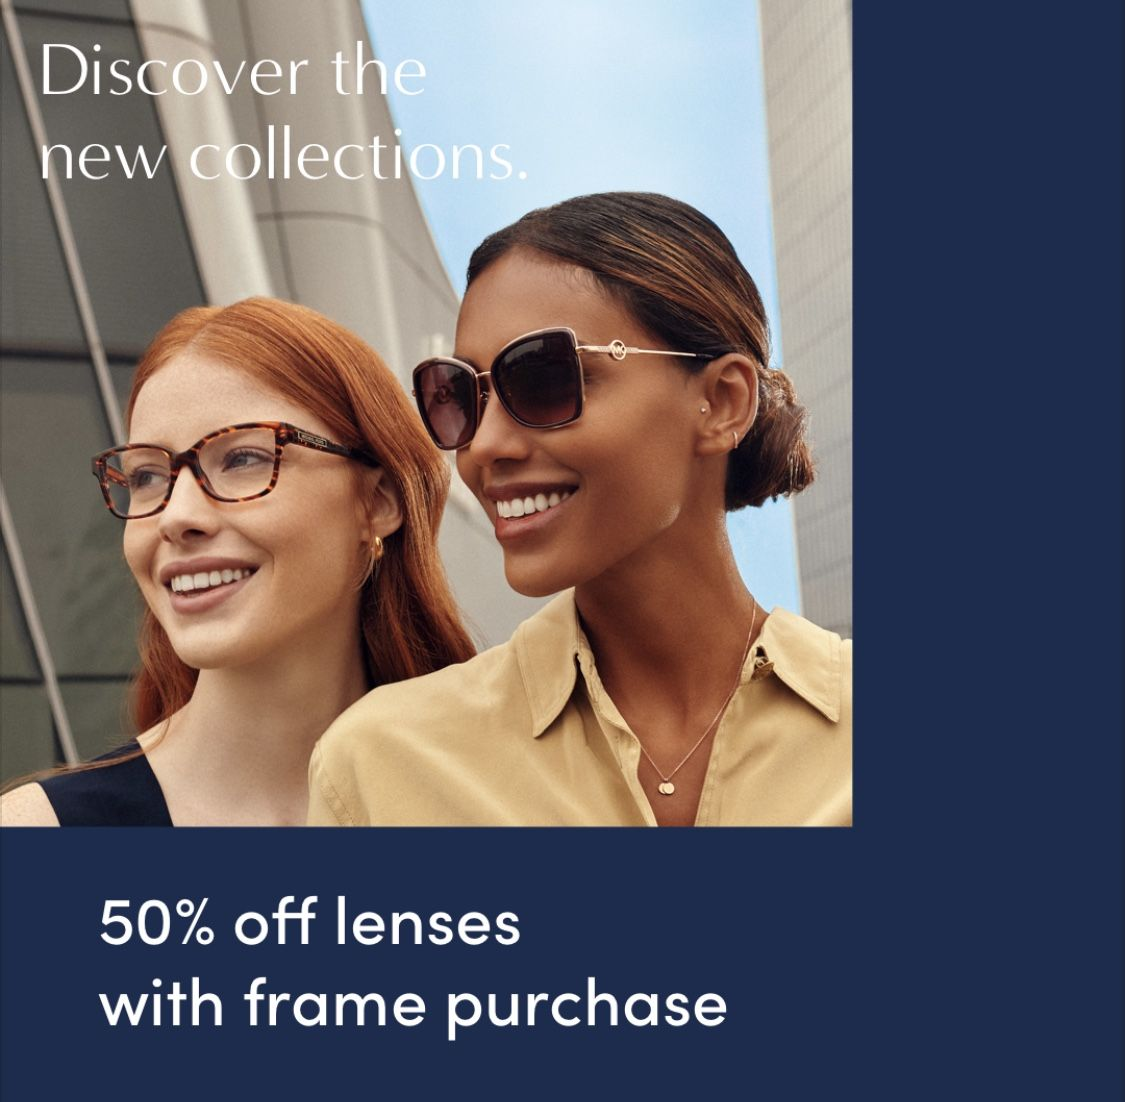 Discover the New Collections Sale! from LensCrafters